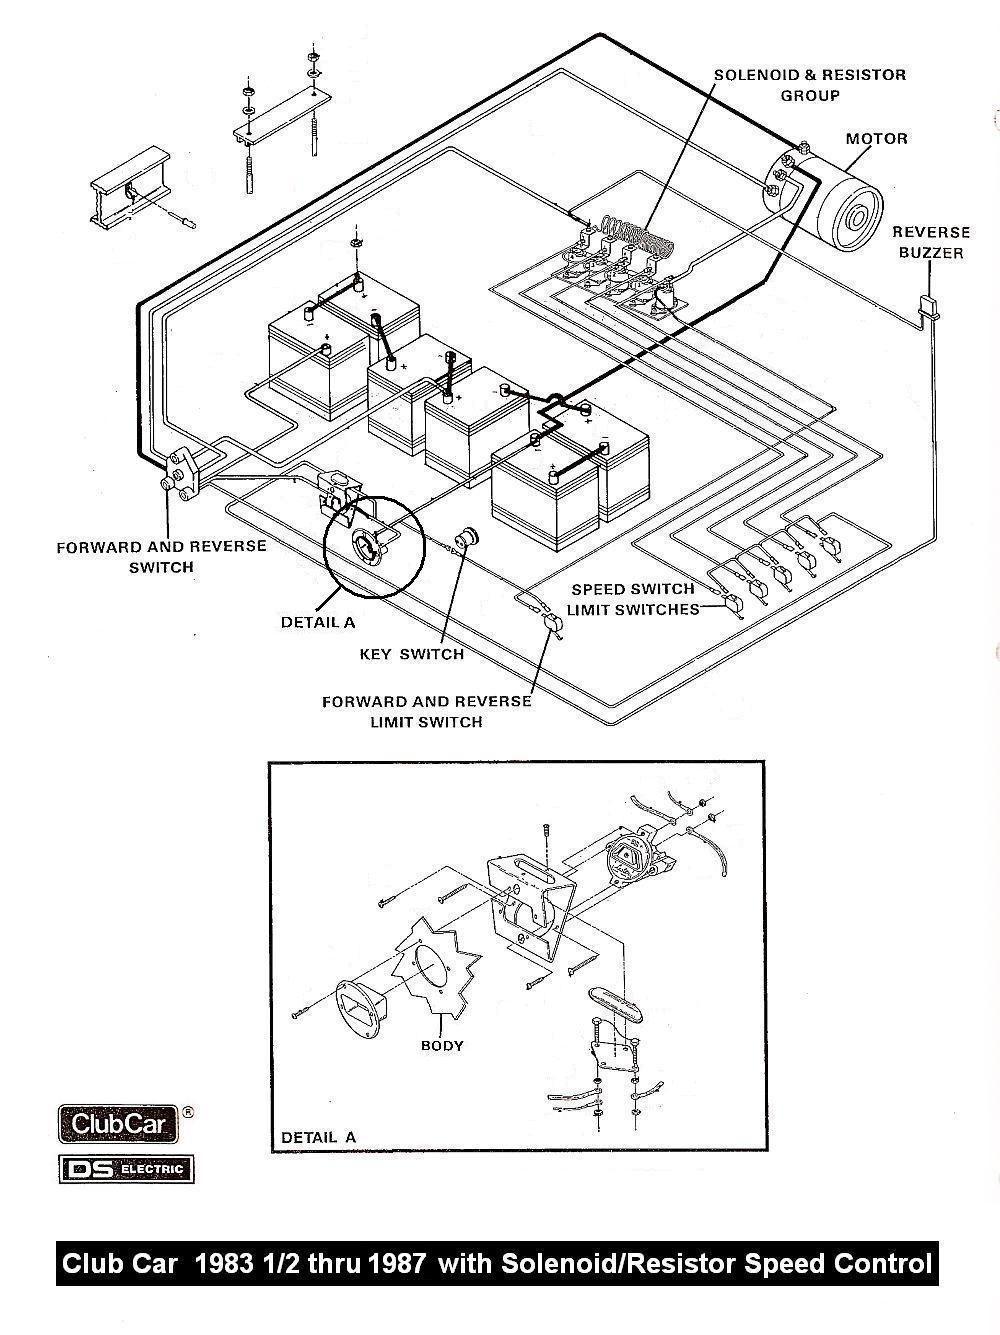 1997 ezgo wiring diagram vintagegolfcartparts.com - | *freezer & crock pot* | golf ...